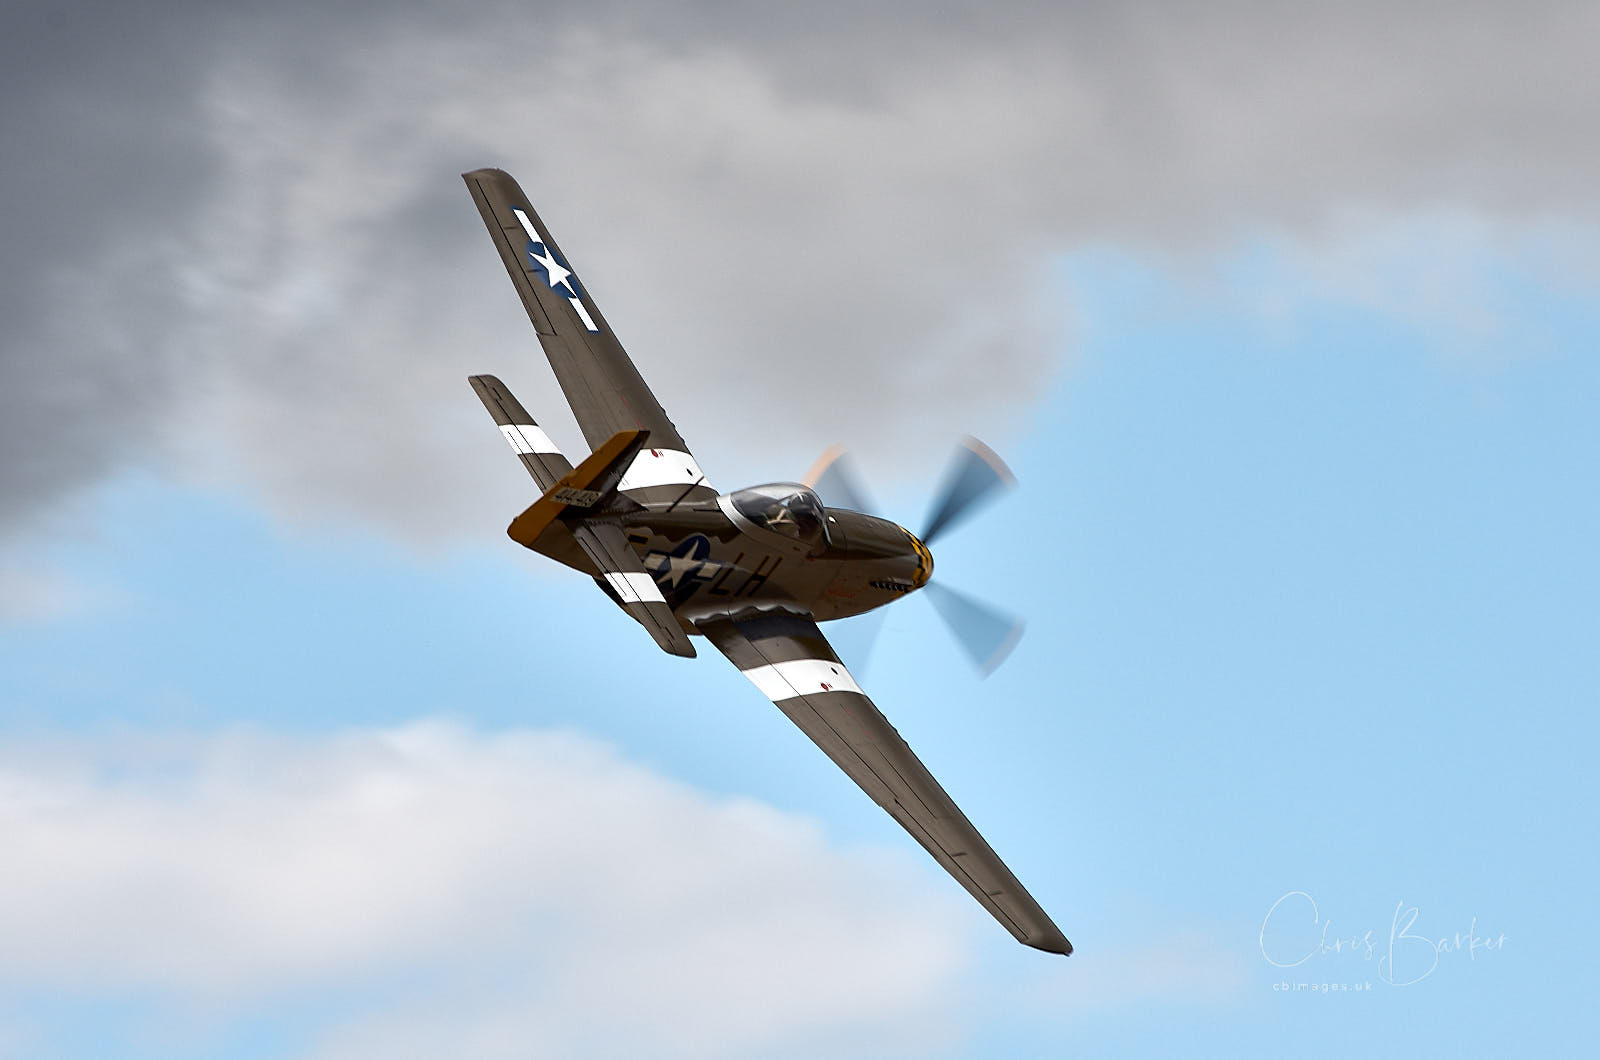 A P-51 Mustang flying towards a blue sky